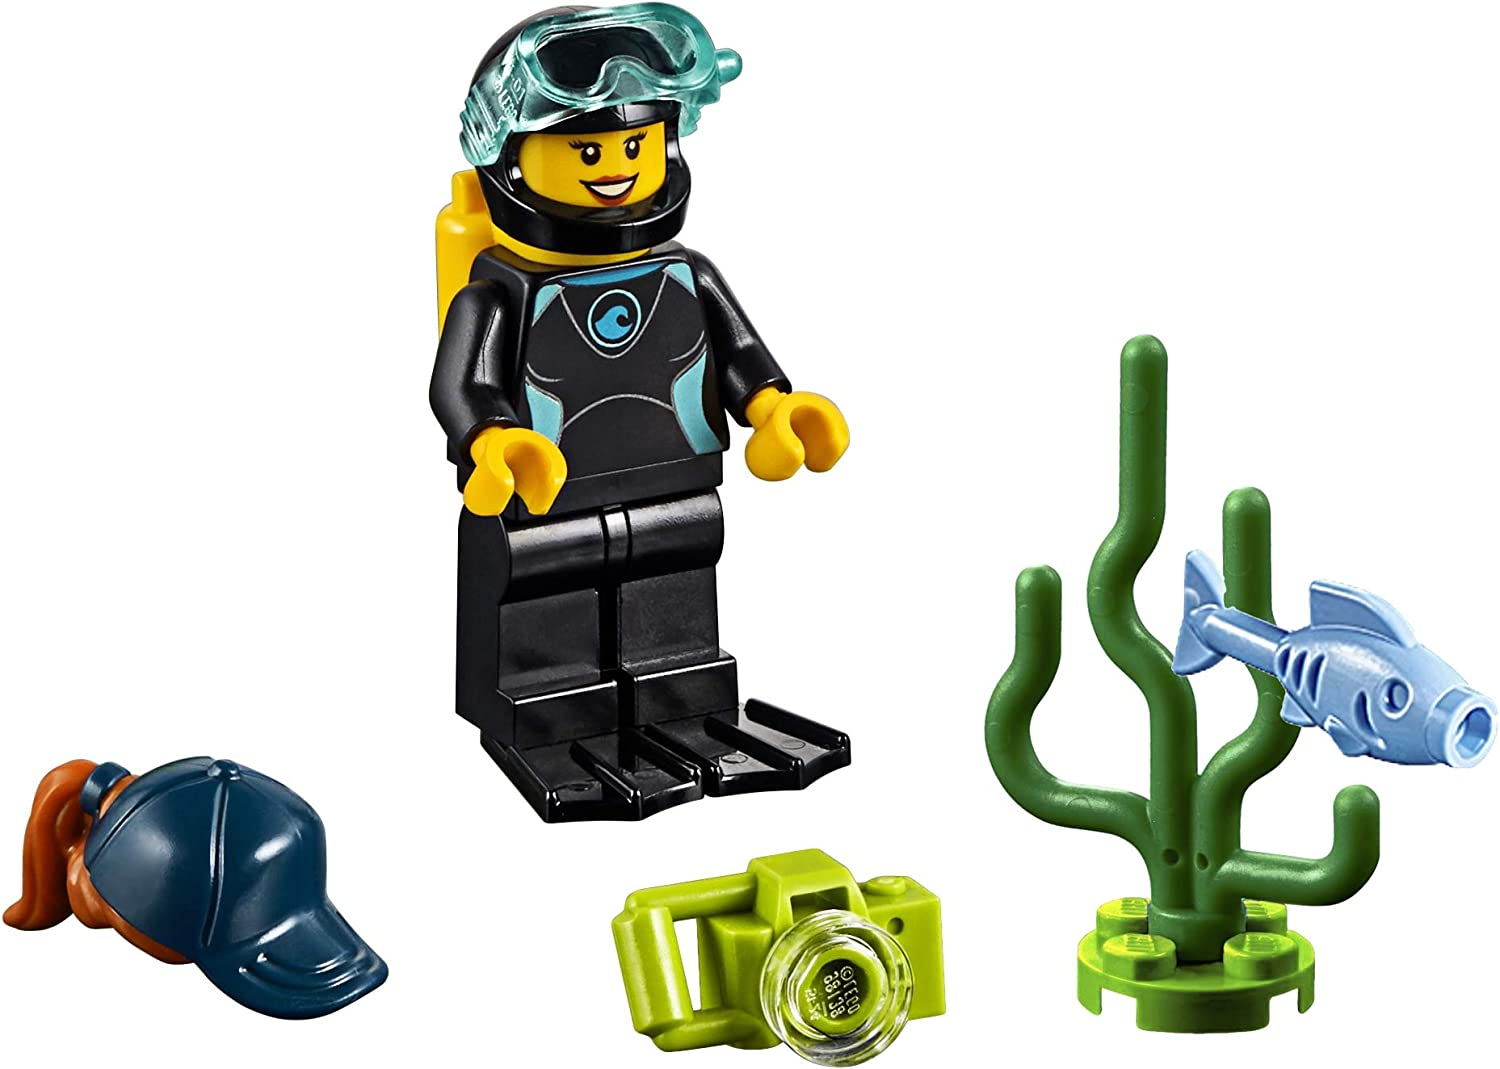 LEGO City Minifigure - Female Diver in Wetsuit (with Camera, Fish, and Sea Plant) 60221